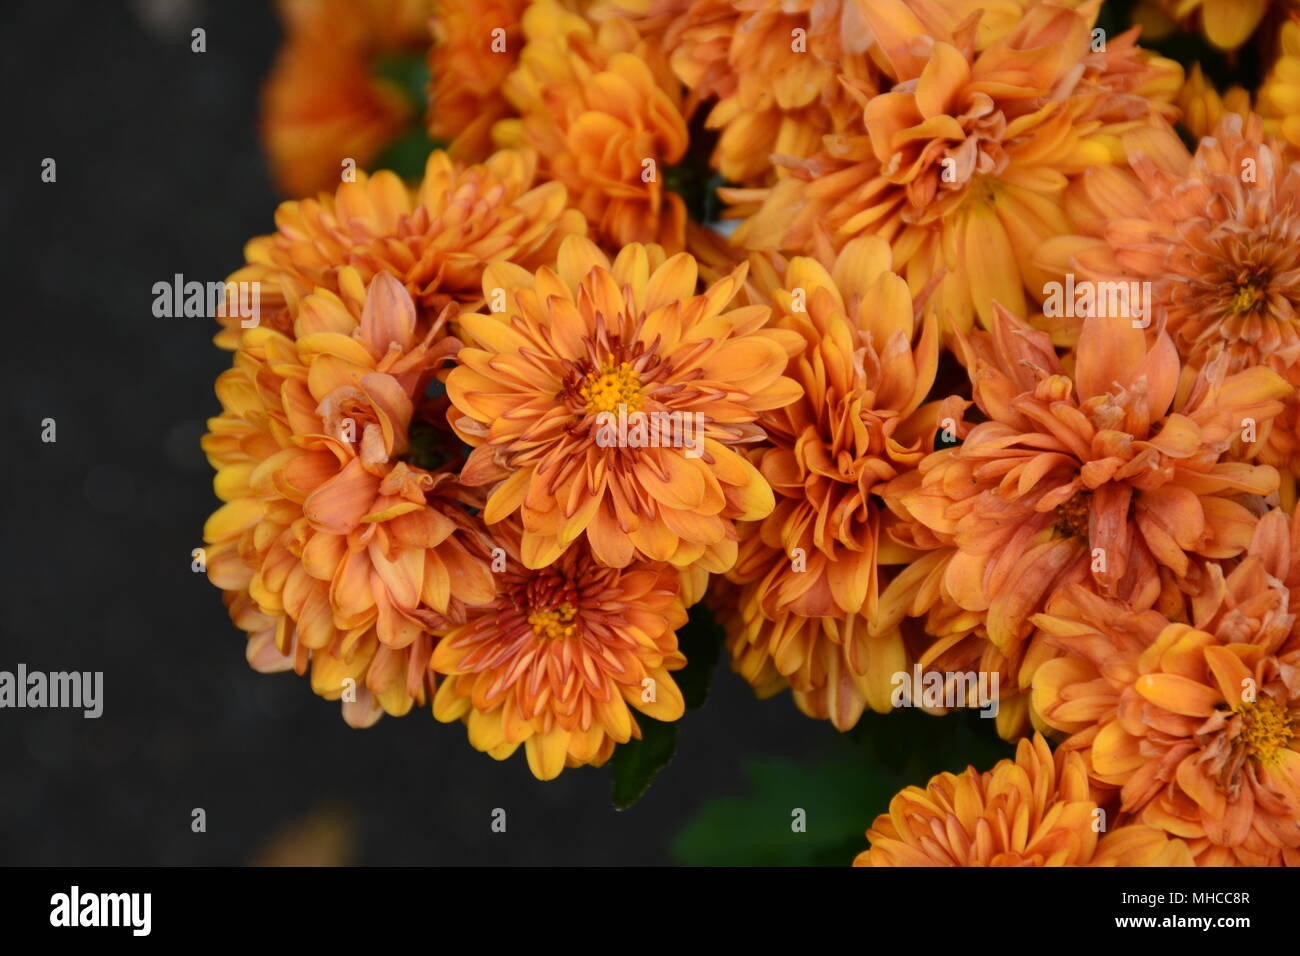 Orange Delicate Pretty Marigold Flowers Stock Photo 182825911 Alamy